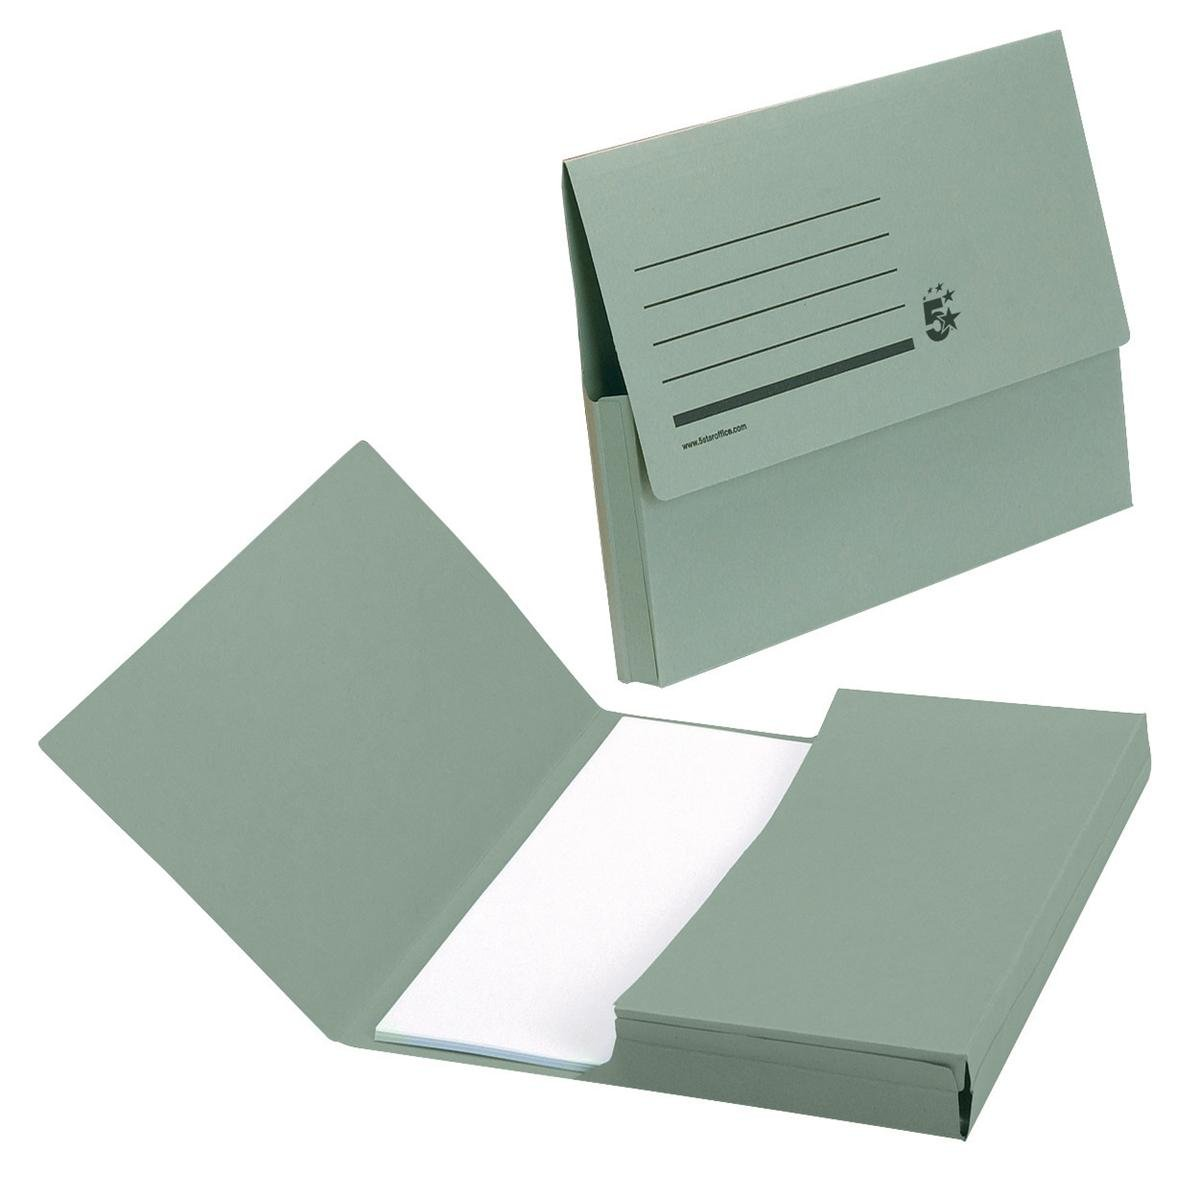 5 Star Document Wallet Half Flap 285gsm Capacity 32mm Foolscap Green Pack of 50